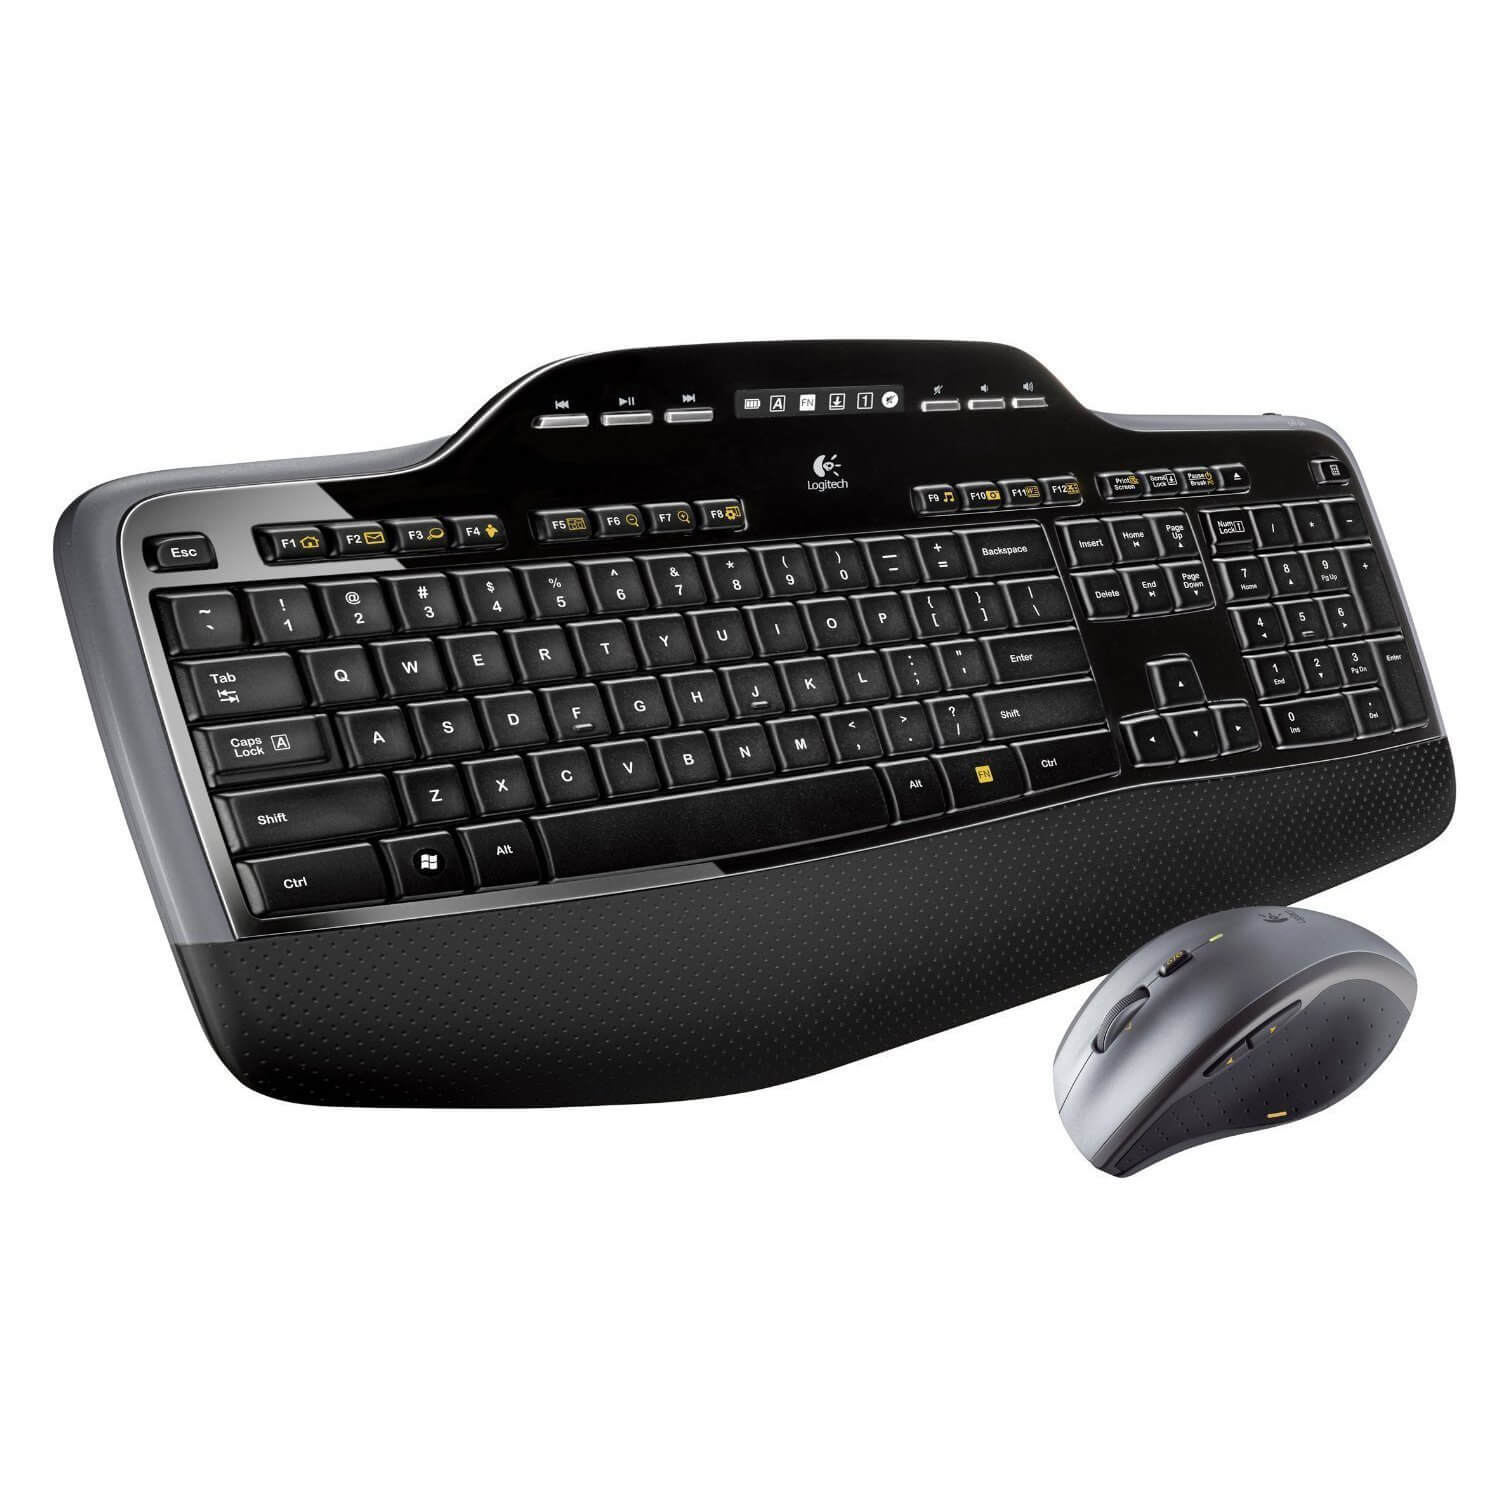 Refurbished Logitech MK735 Wireless Multimedia Keyboard & Laser Mouse - Black - 920-008666